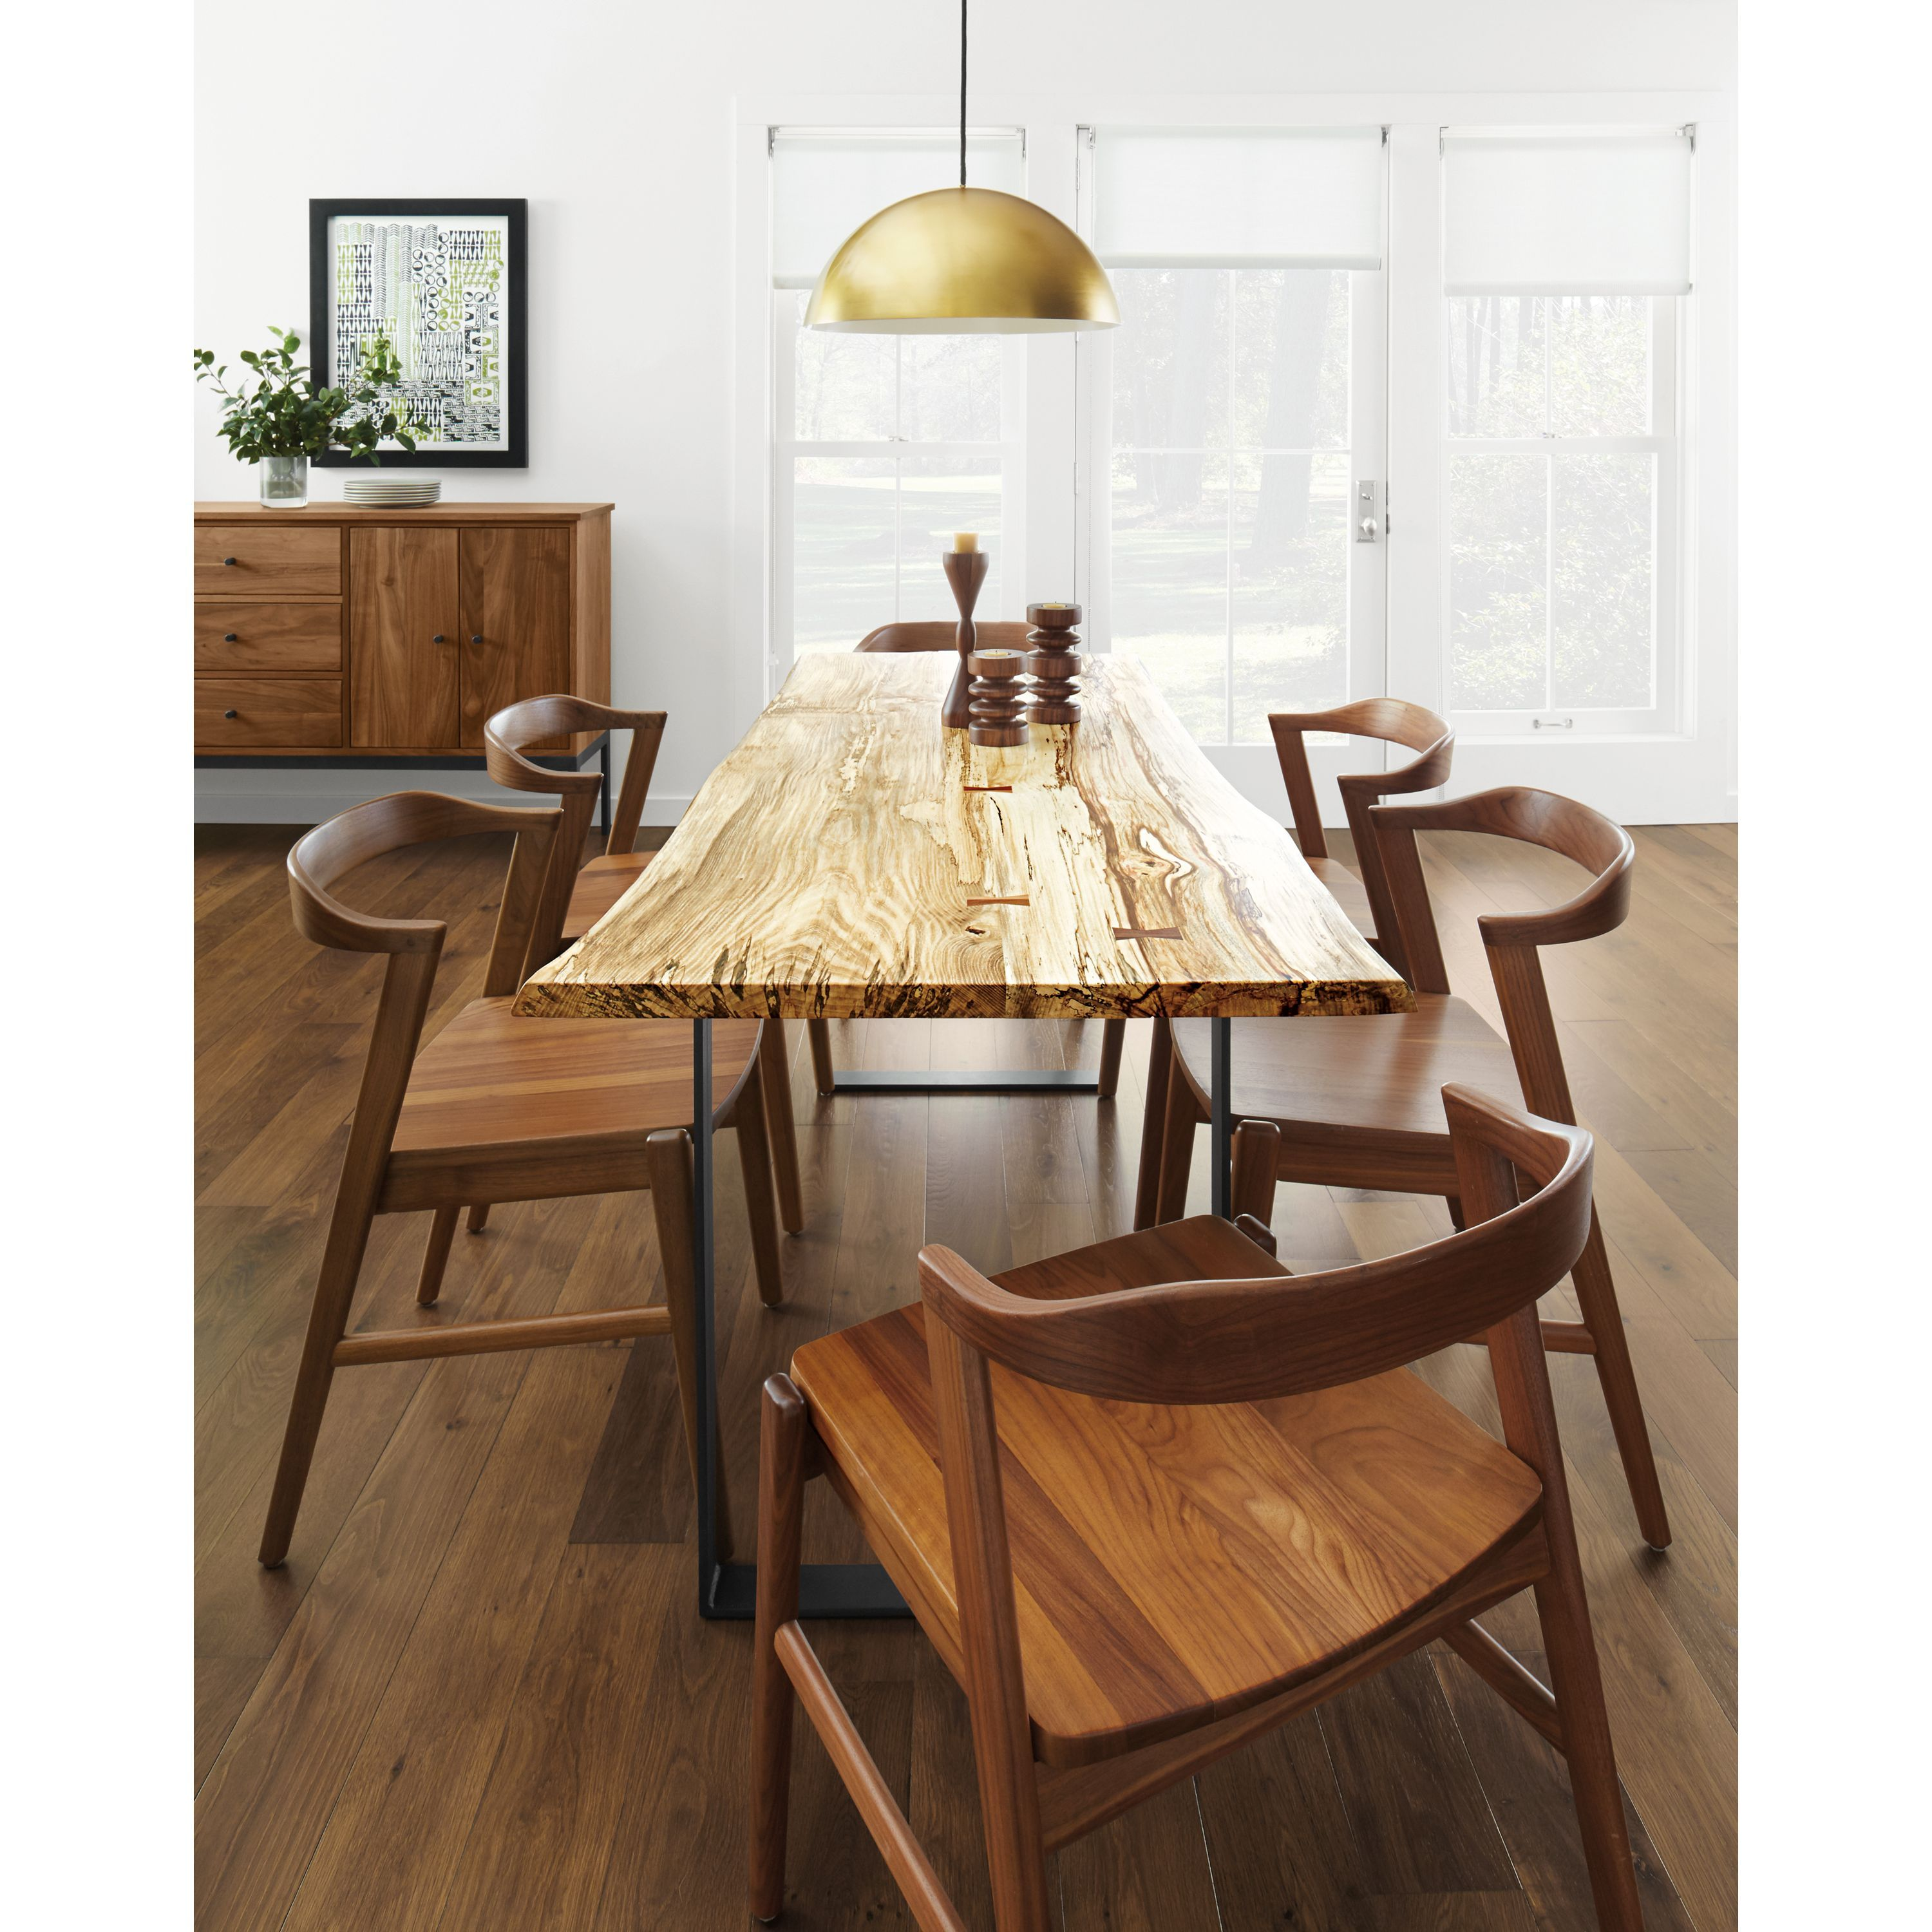 Each Chilton table features a shape and grain as unique as the tree it came from. A solid slab of wood is sanded and finished, braced with walnut butterfly joints in any areas requiring extra support, and secured to a hand-welded natural steel base. The best part? You can choose the exact top you like best for a one-of-a-kind look. Material: Wood; Natural Steel